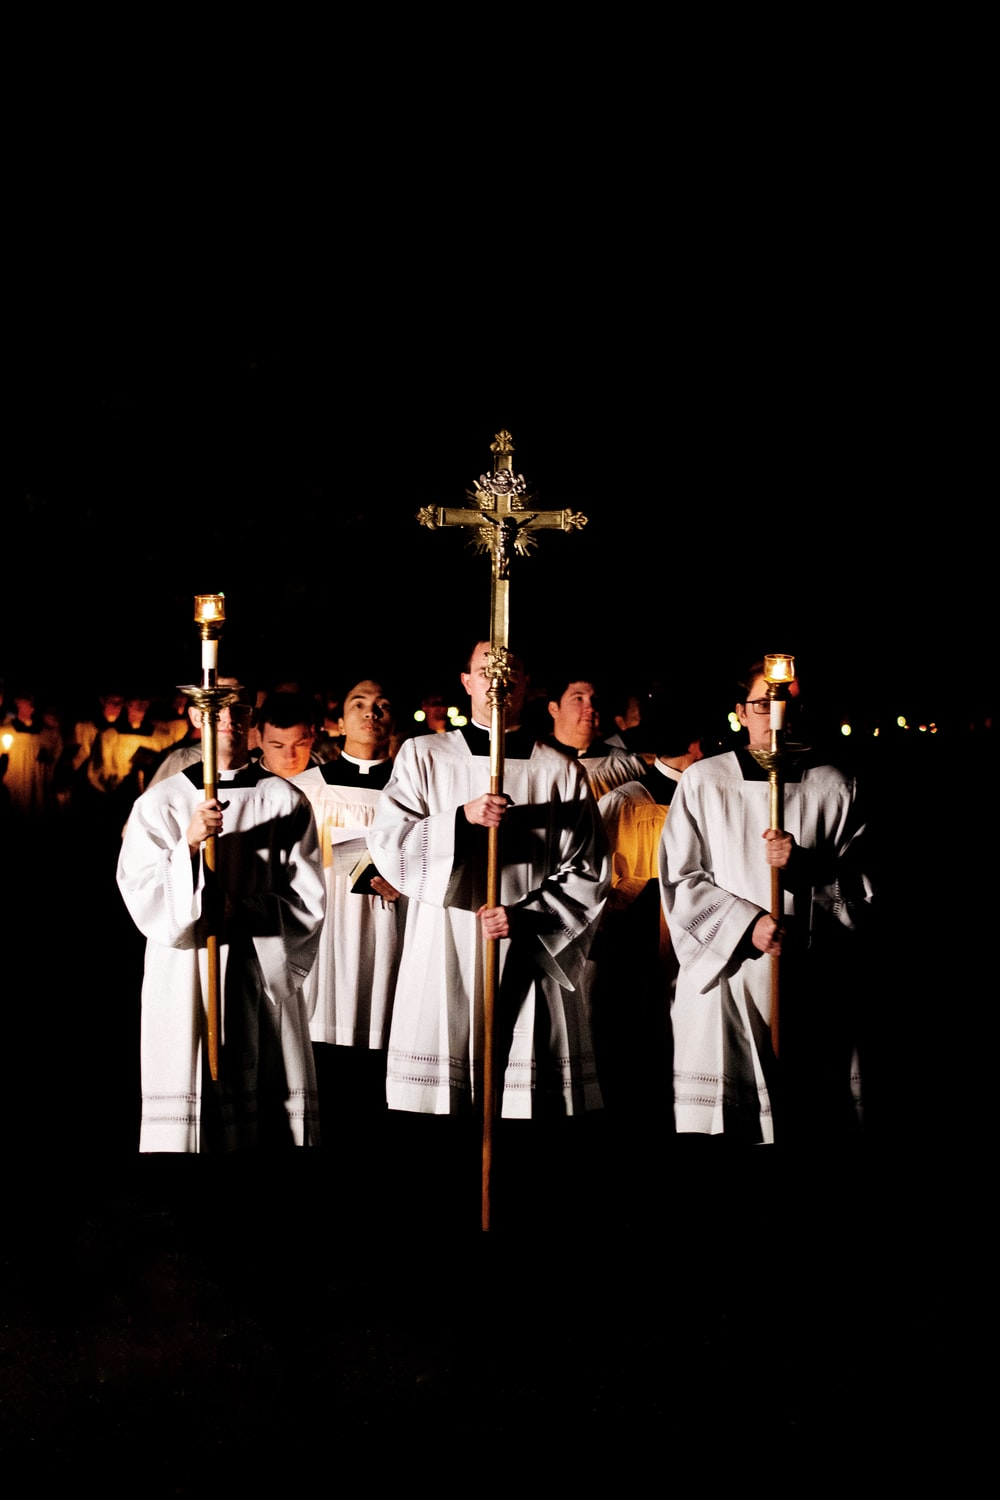 men holding cross and candle light